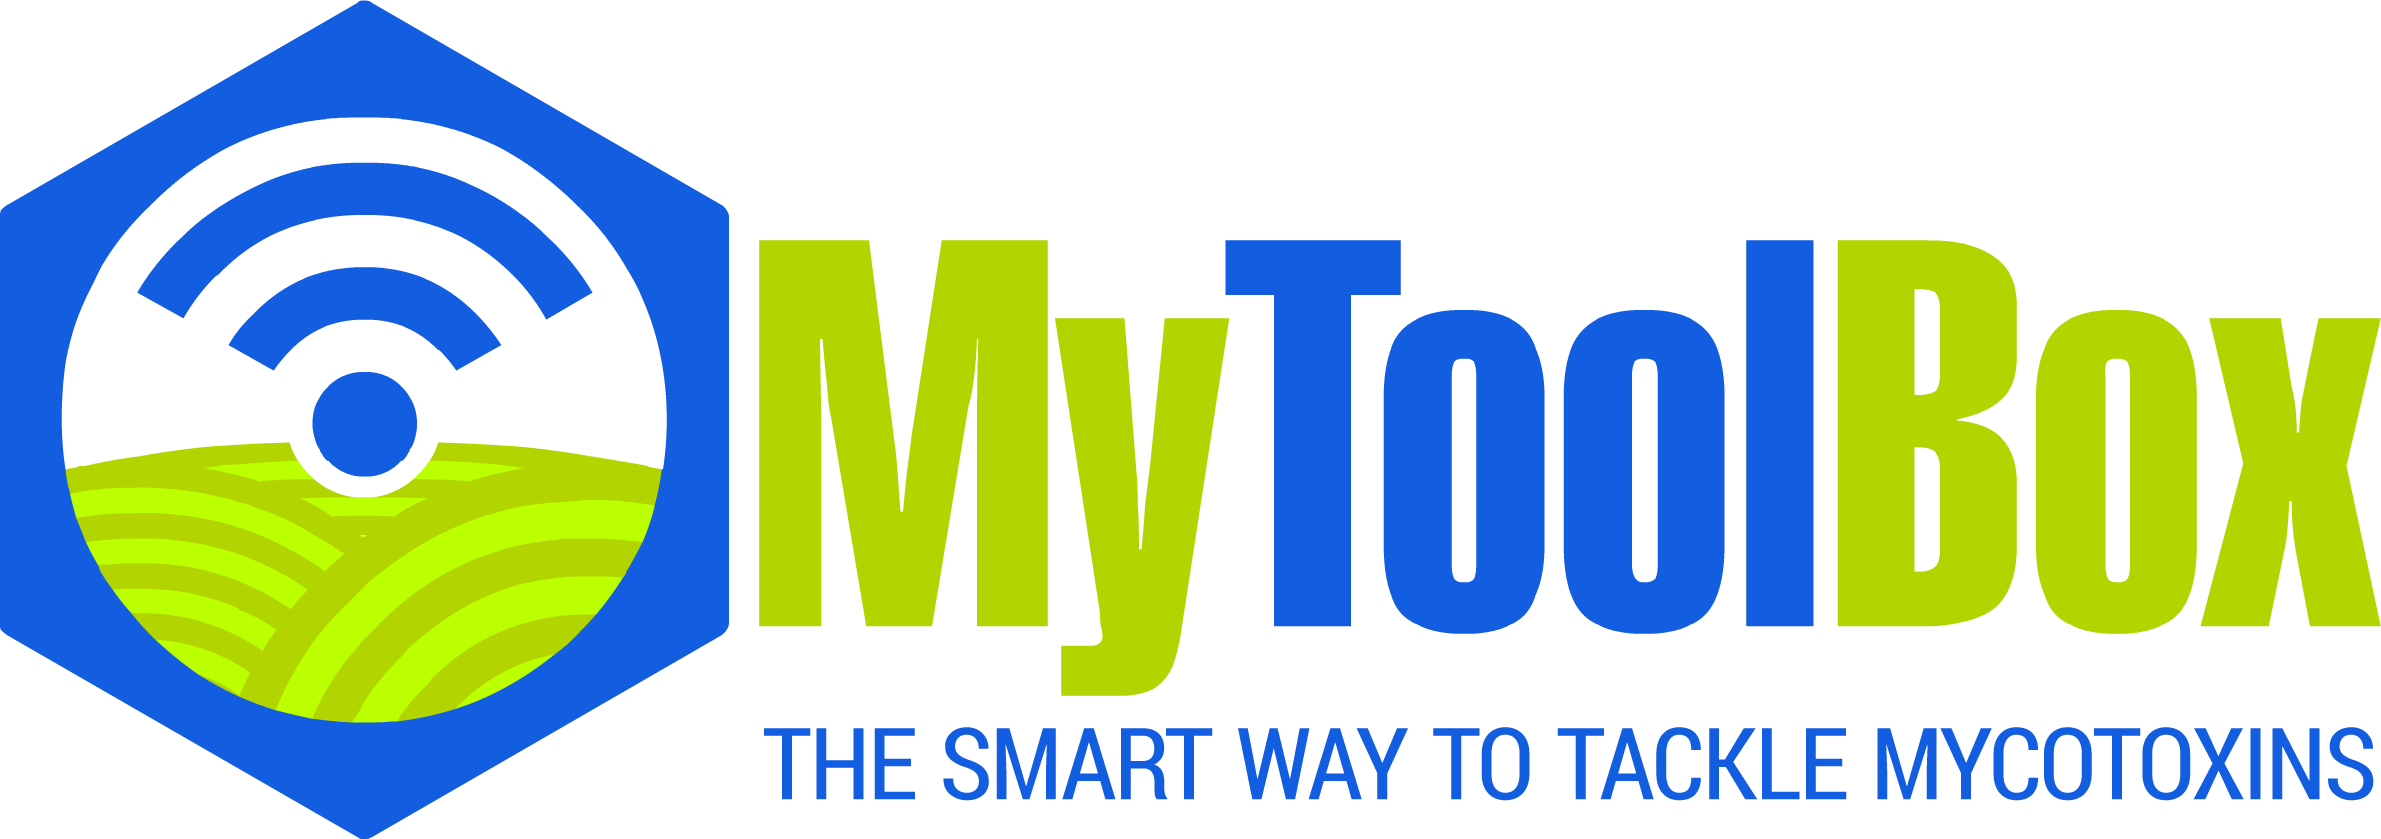 logo_mytoolbox_with_tagline_2381x839.png